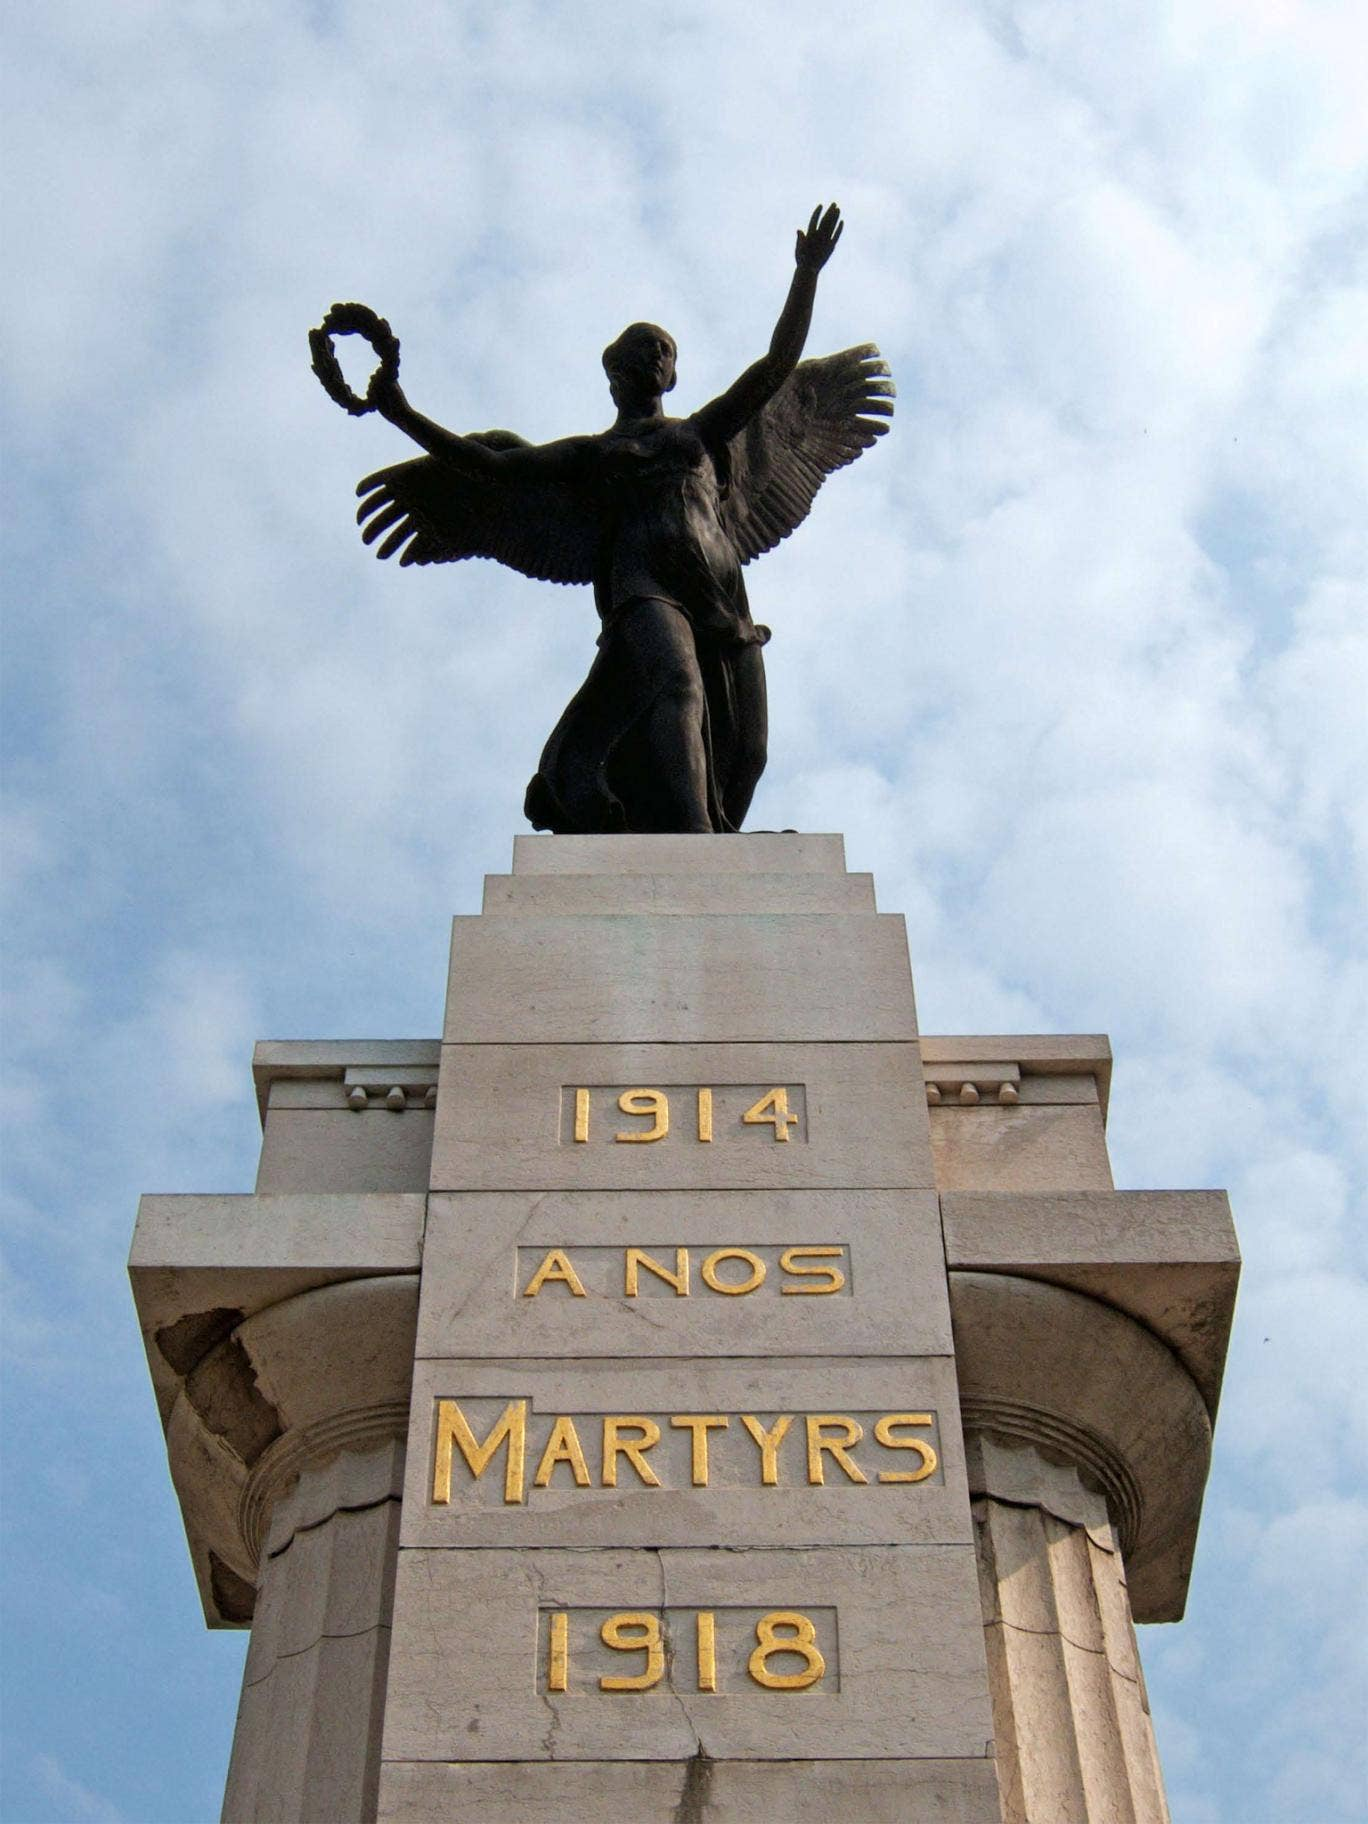 Detail from the Monument to the Martyrs of the Two World Wars, Charleroi